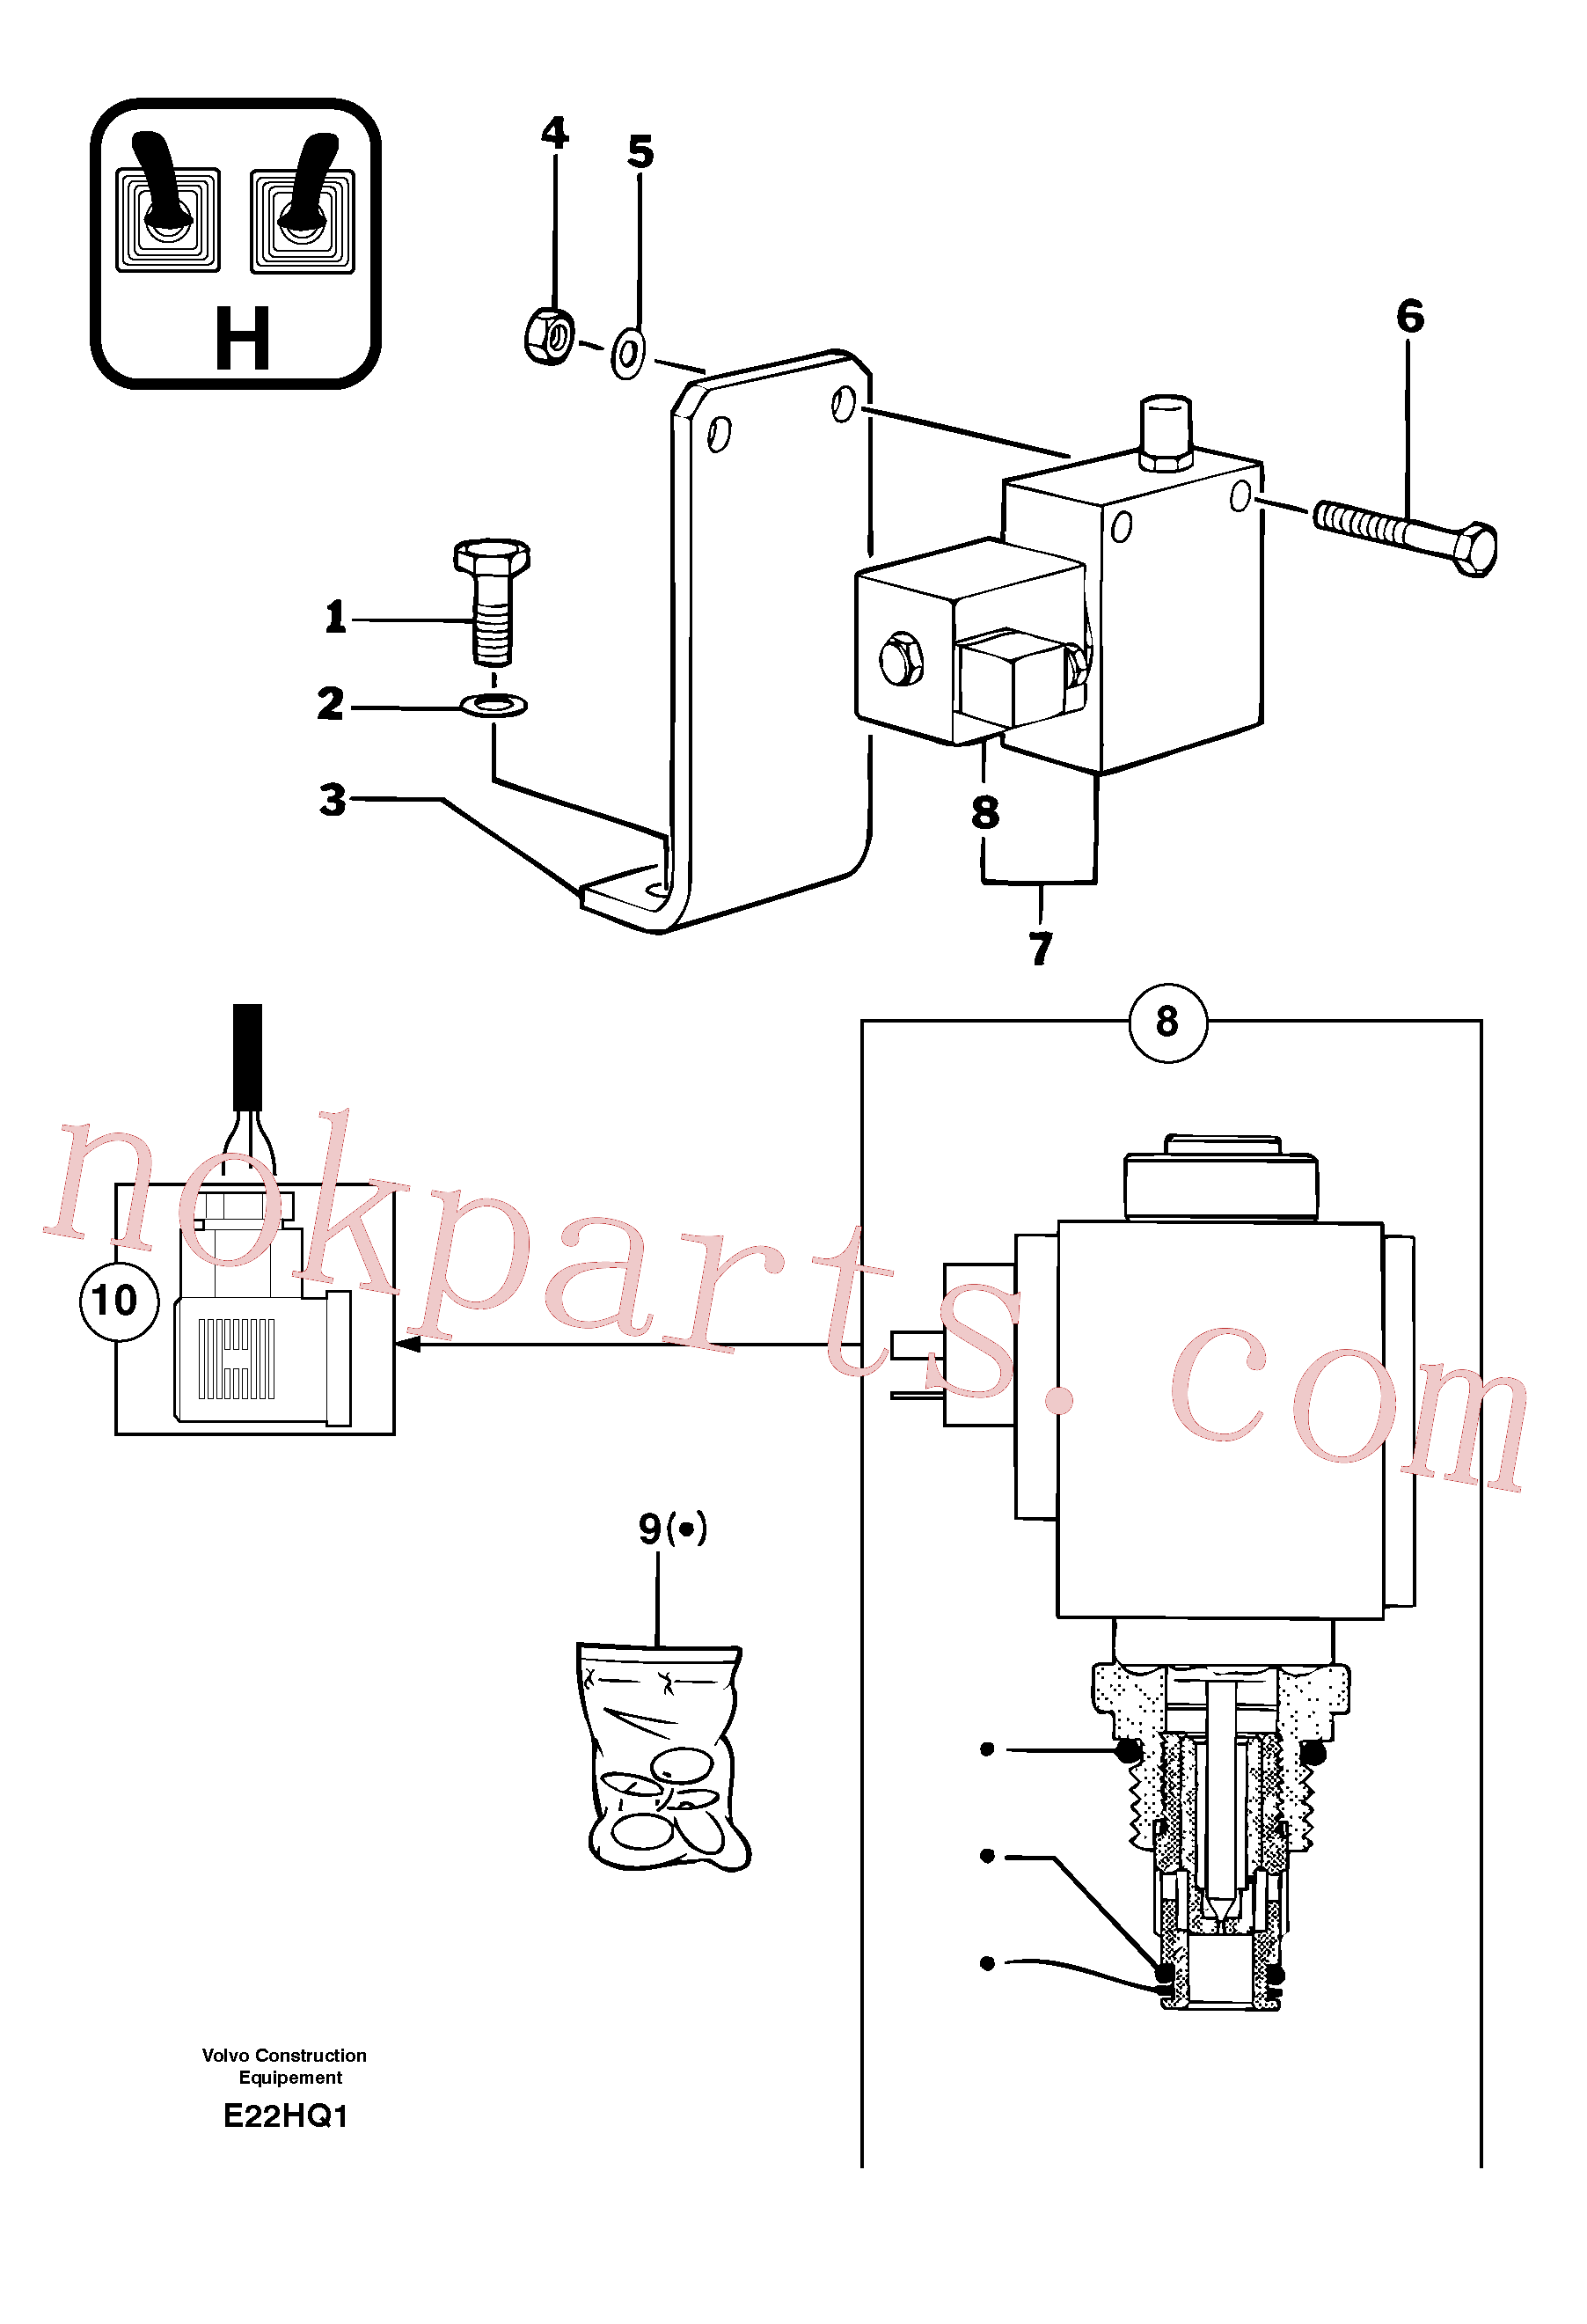 PJ5130051 for Volvo Hydraulic servo-assistance control lever(E22HQ1 assembly)